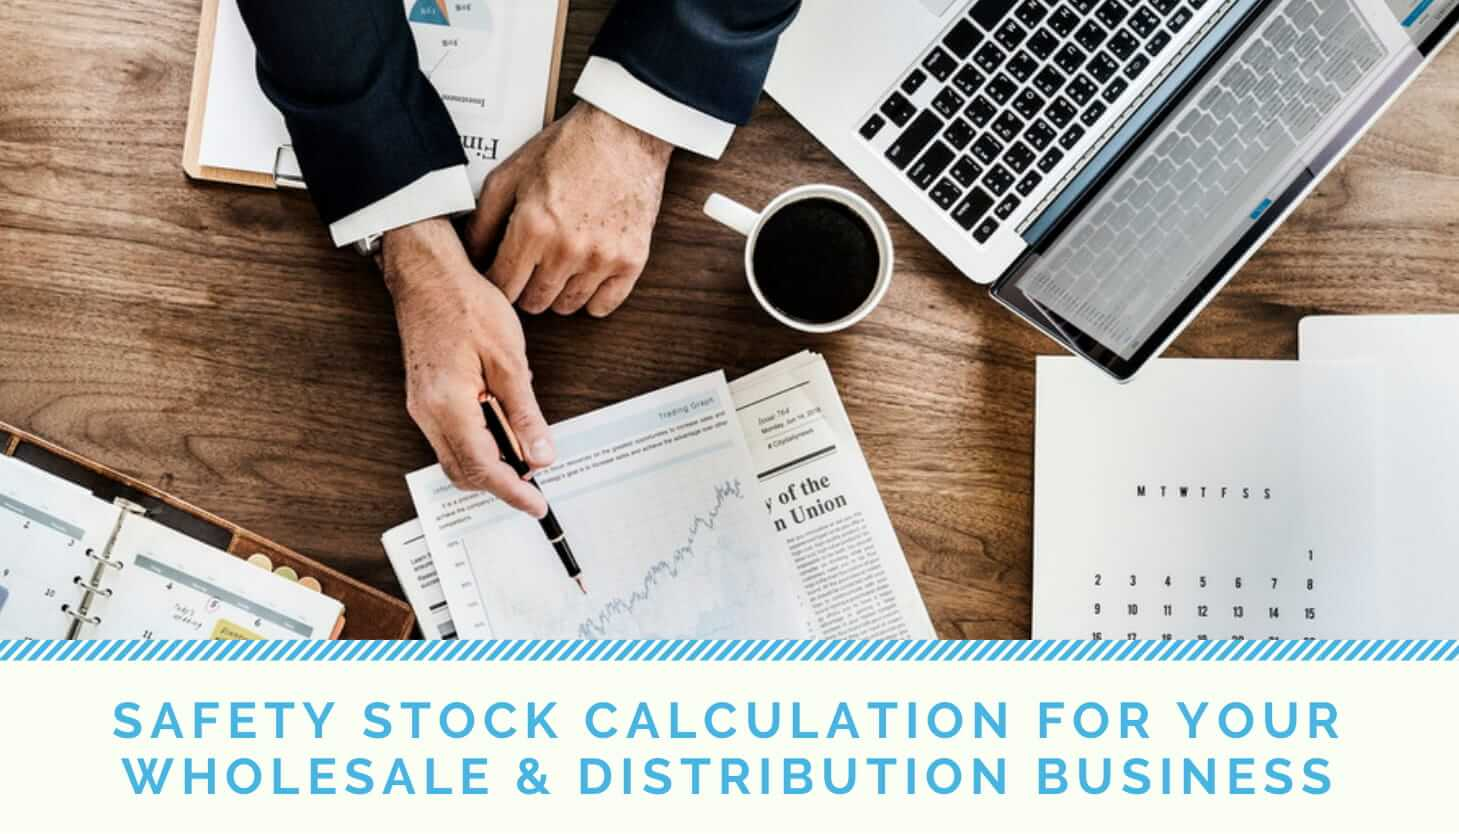 Safety Stock Calculation